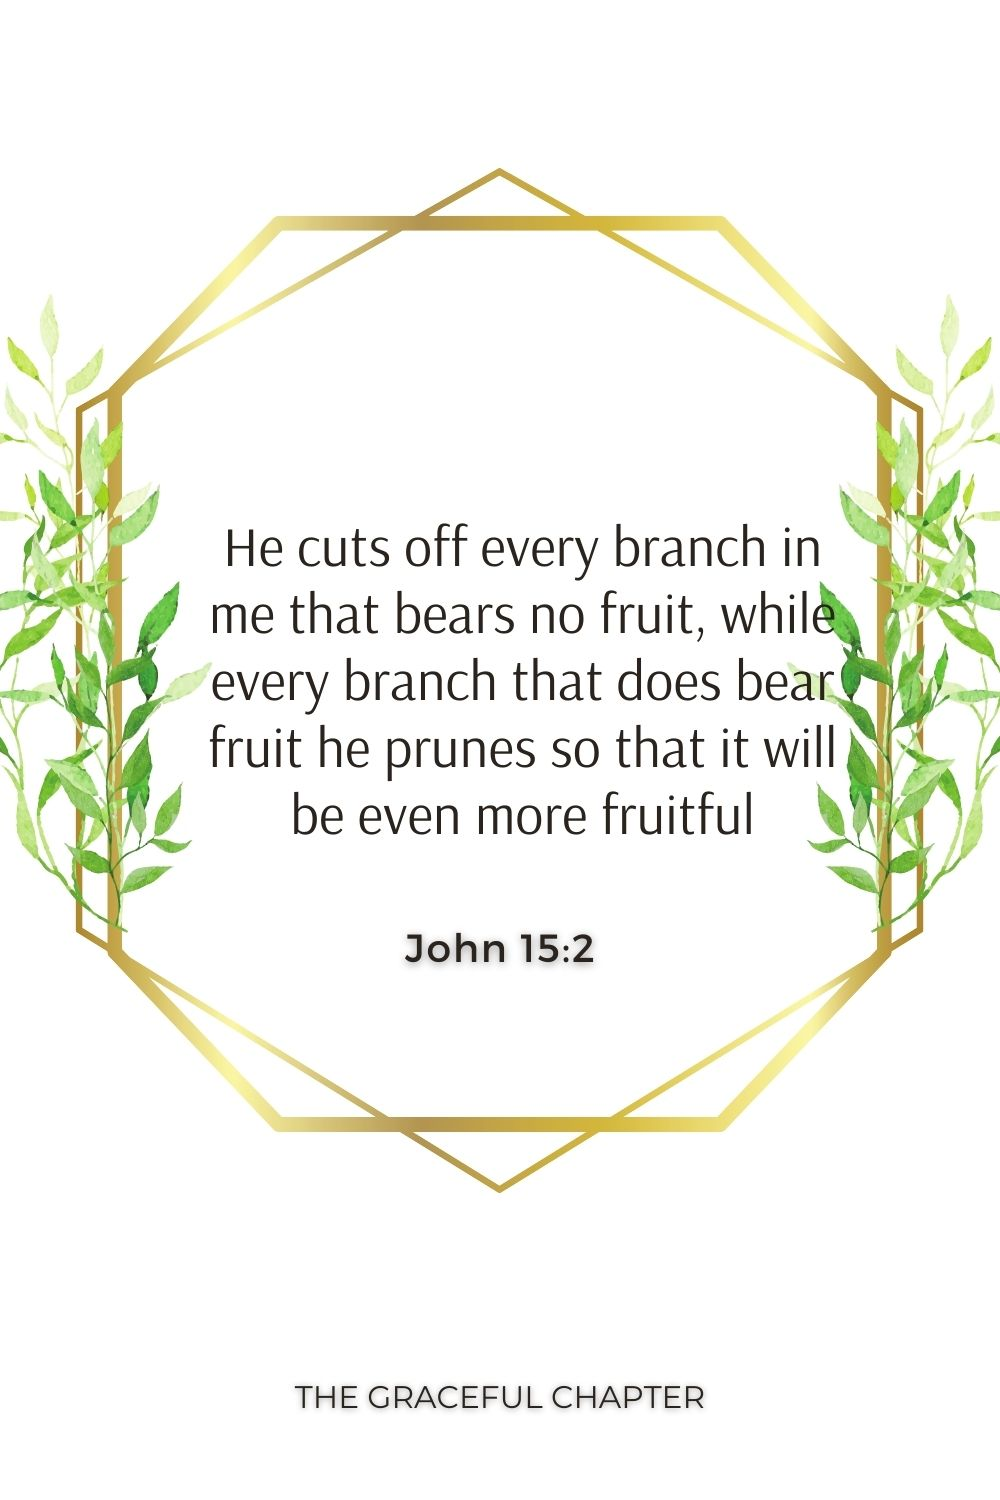 He cuts off every branch in me that bears no fruit, while every branch that does bear fruit he prunes so that it will be even more fruitful. John 15:2